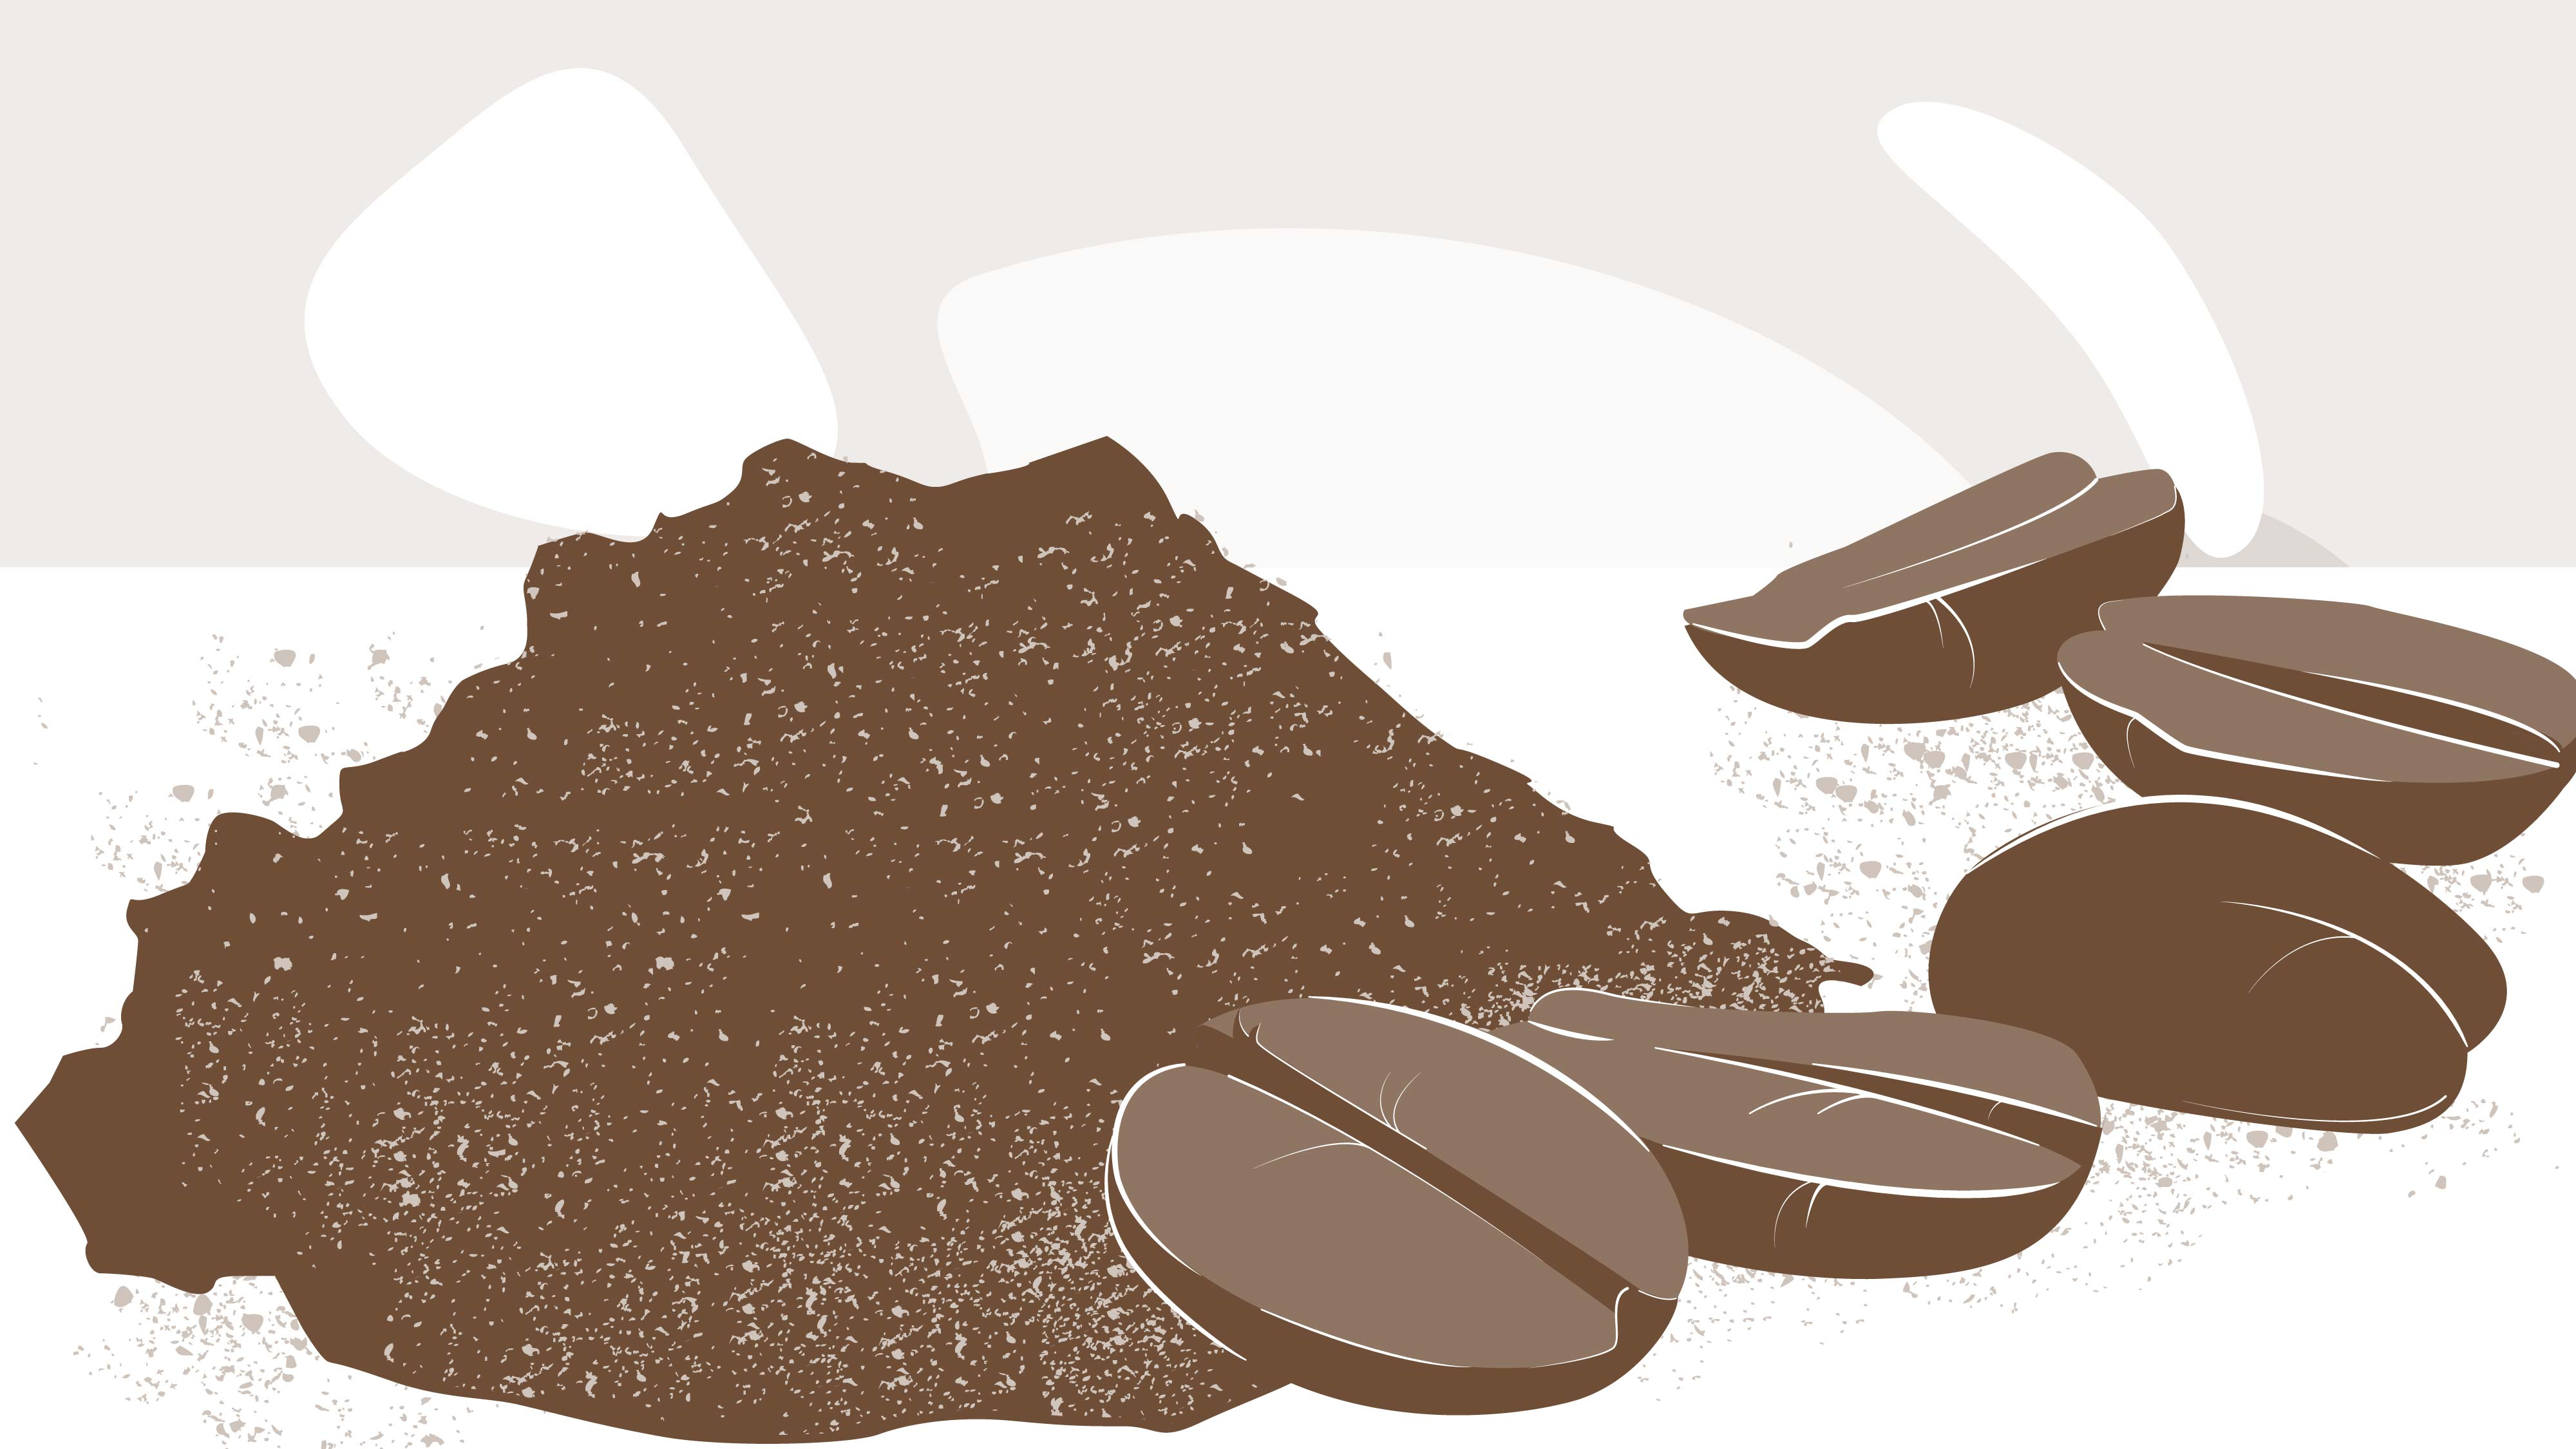 Coffee grounds | 2D Animated Video